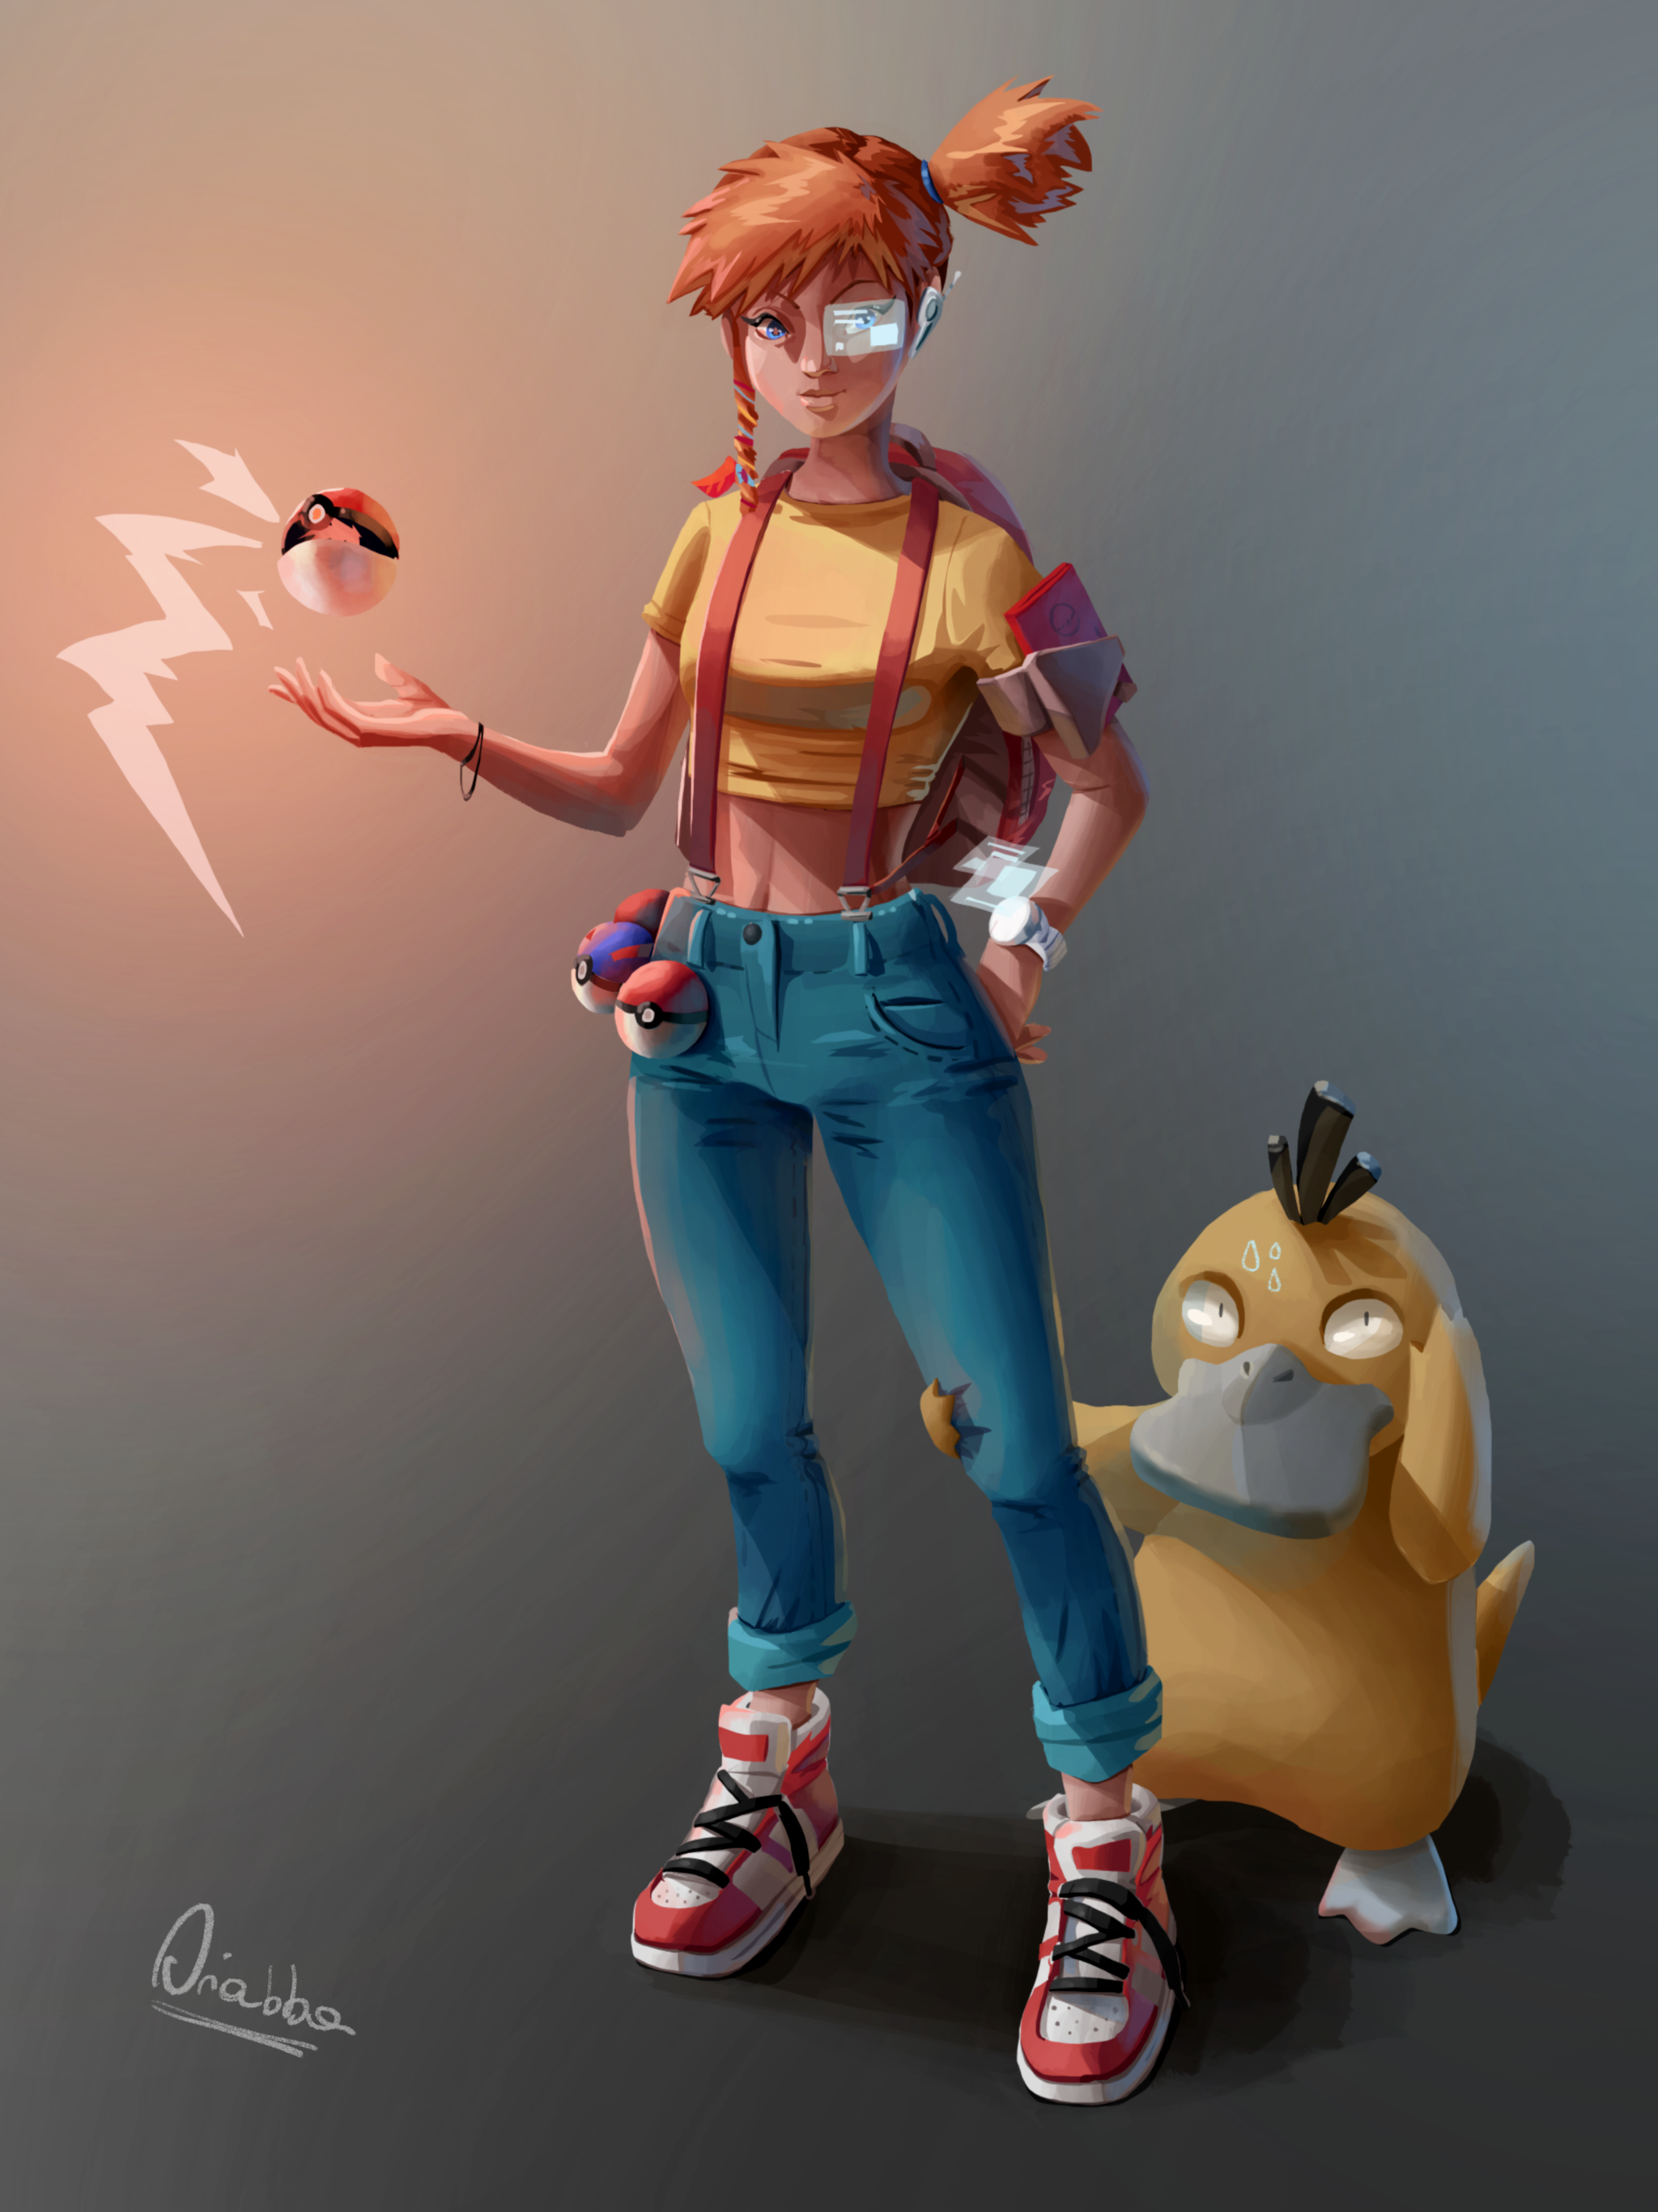 Pokemon character redesign